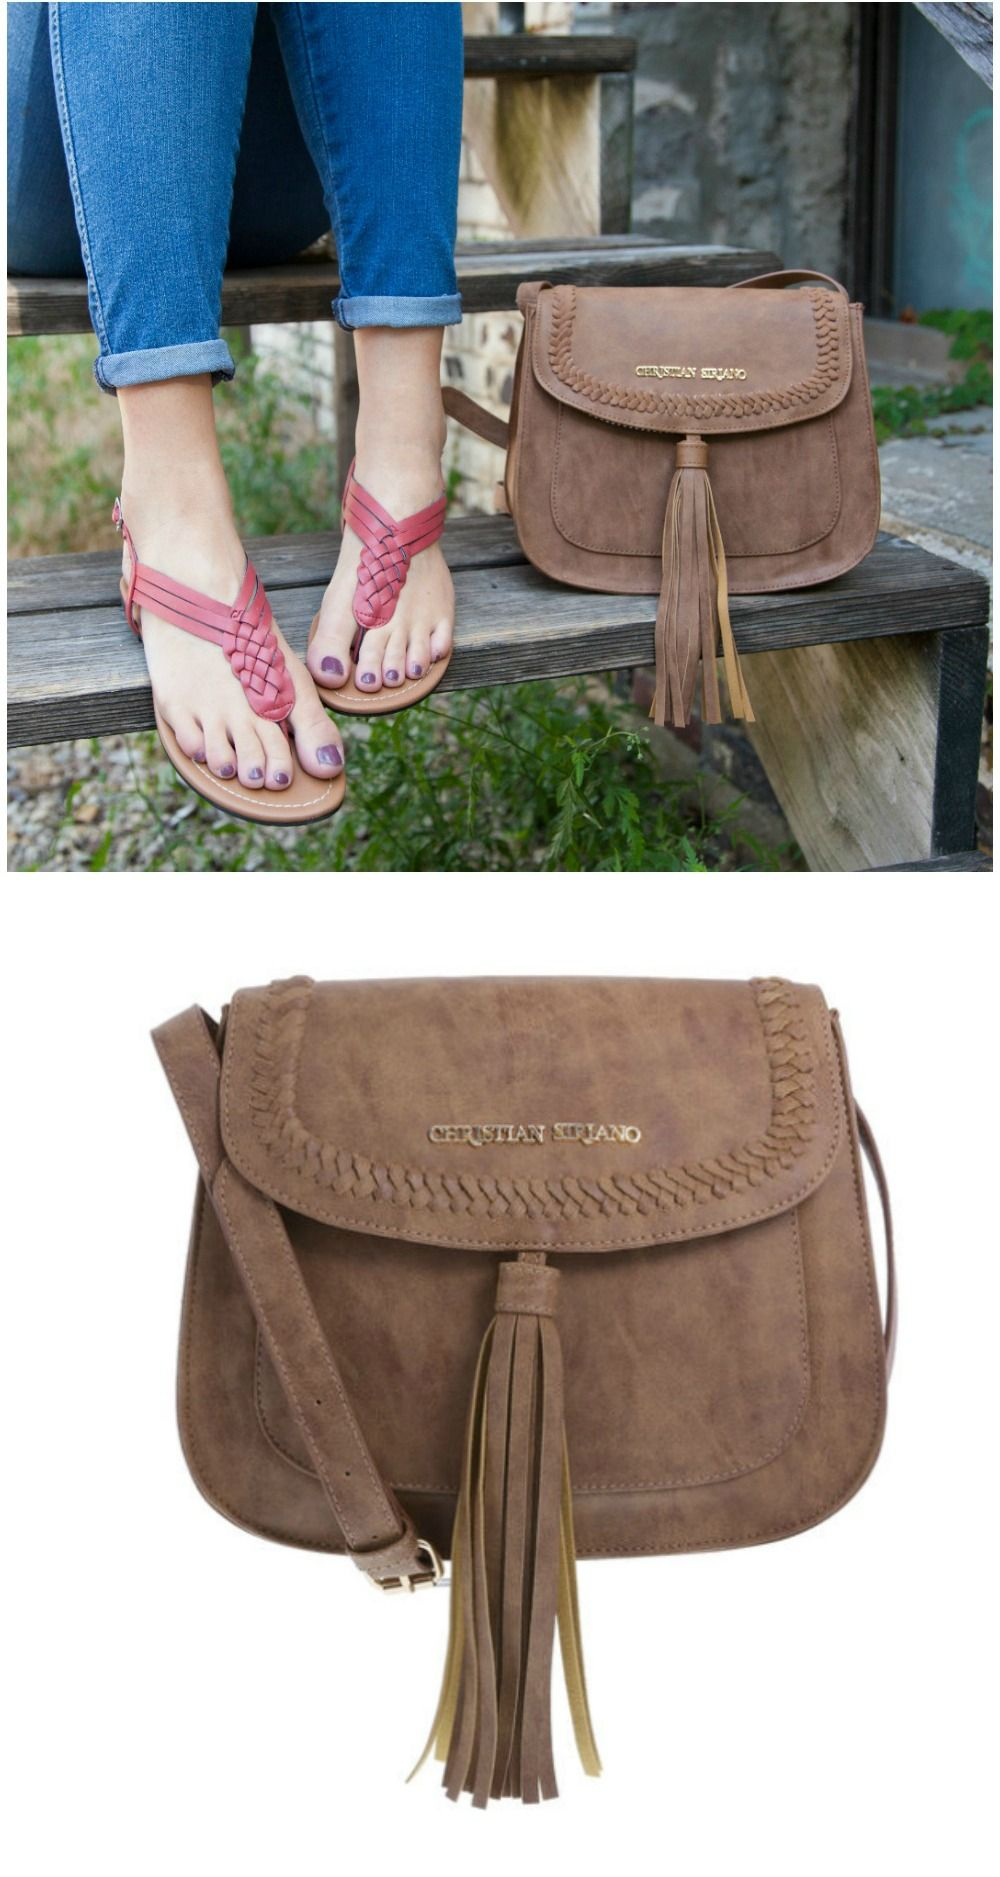 Embrace Your Western Style With This Designer Handbag From